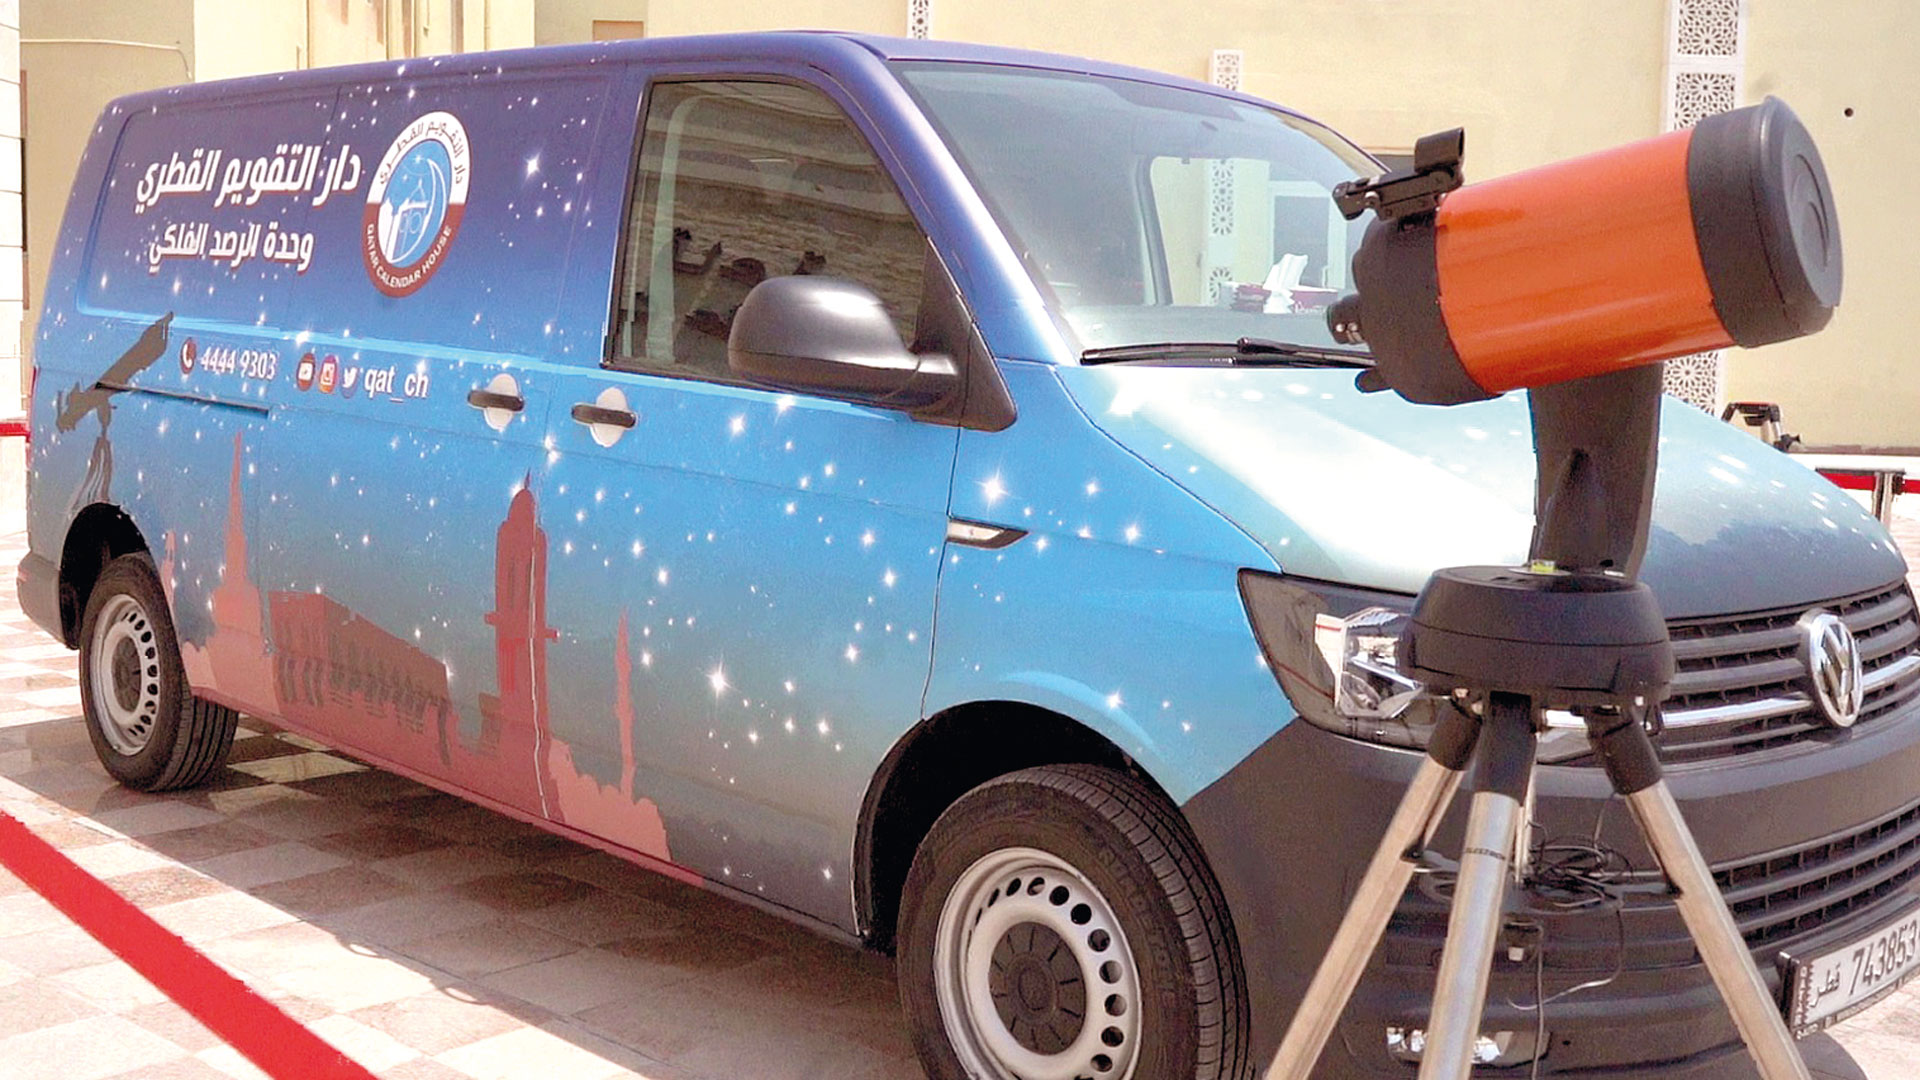 Mobile Astronomical Monitoring Unit Launched